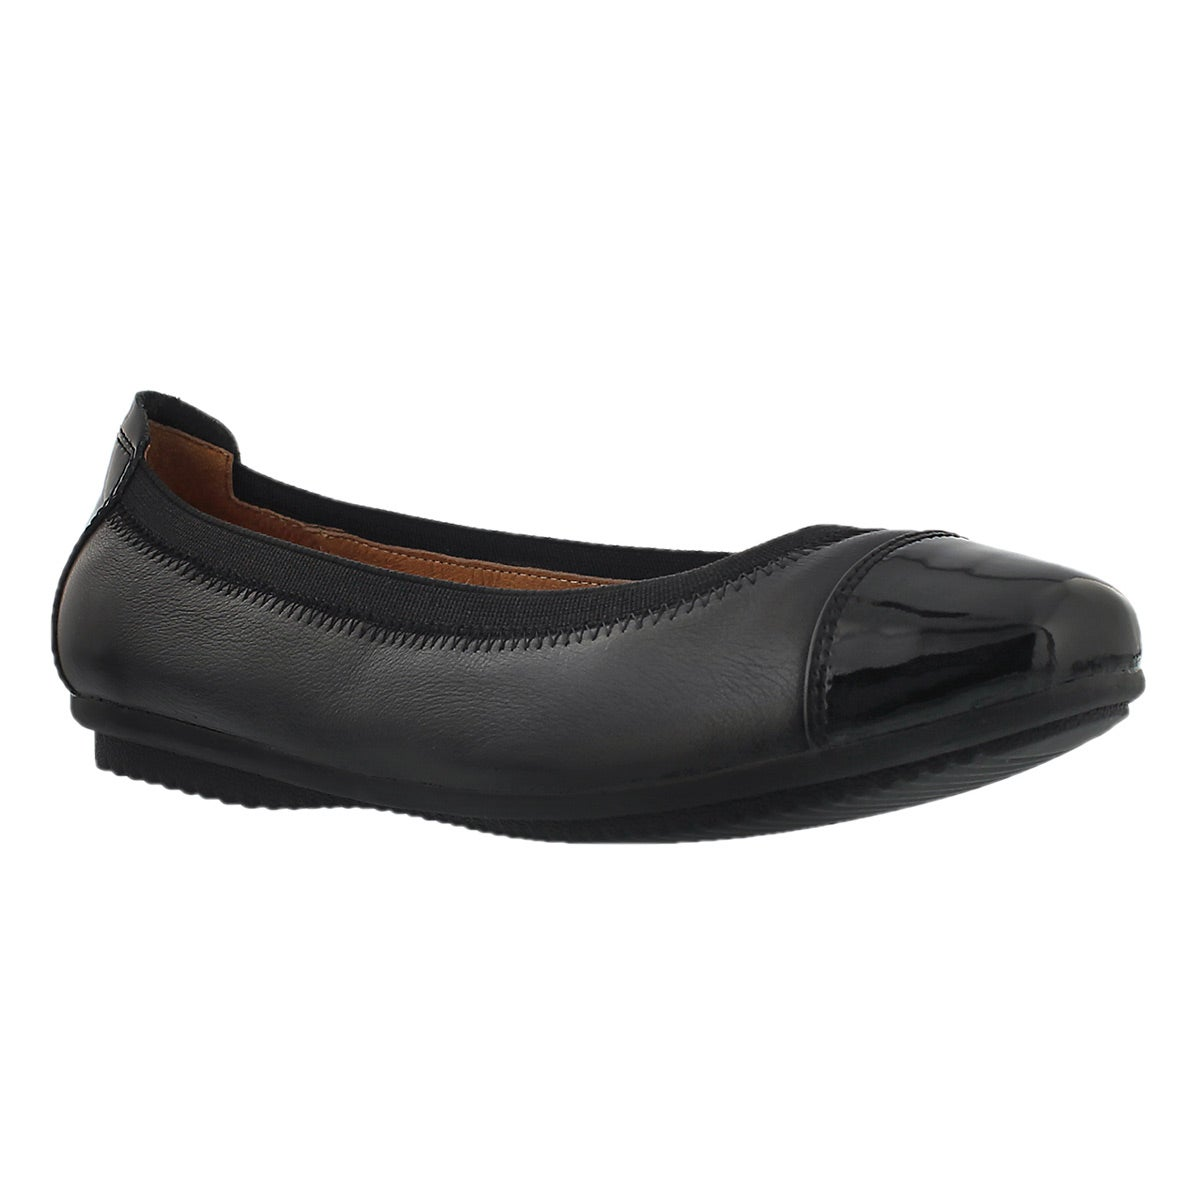 Women's PIPPA 07 leather black ballerina flats